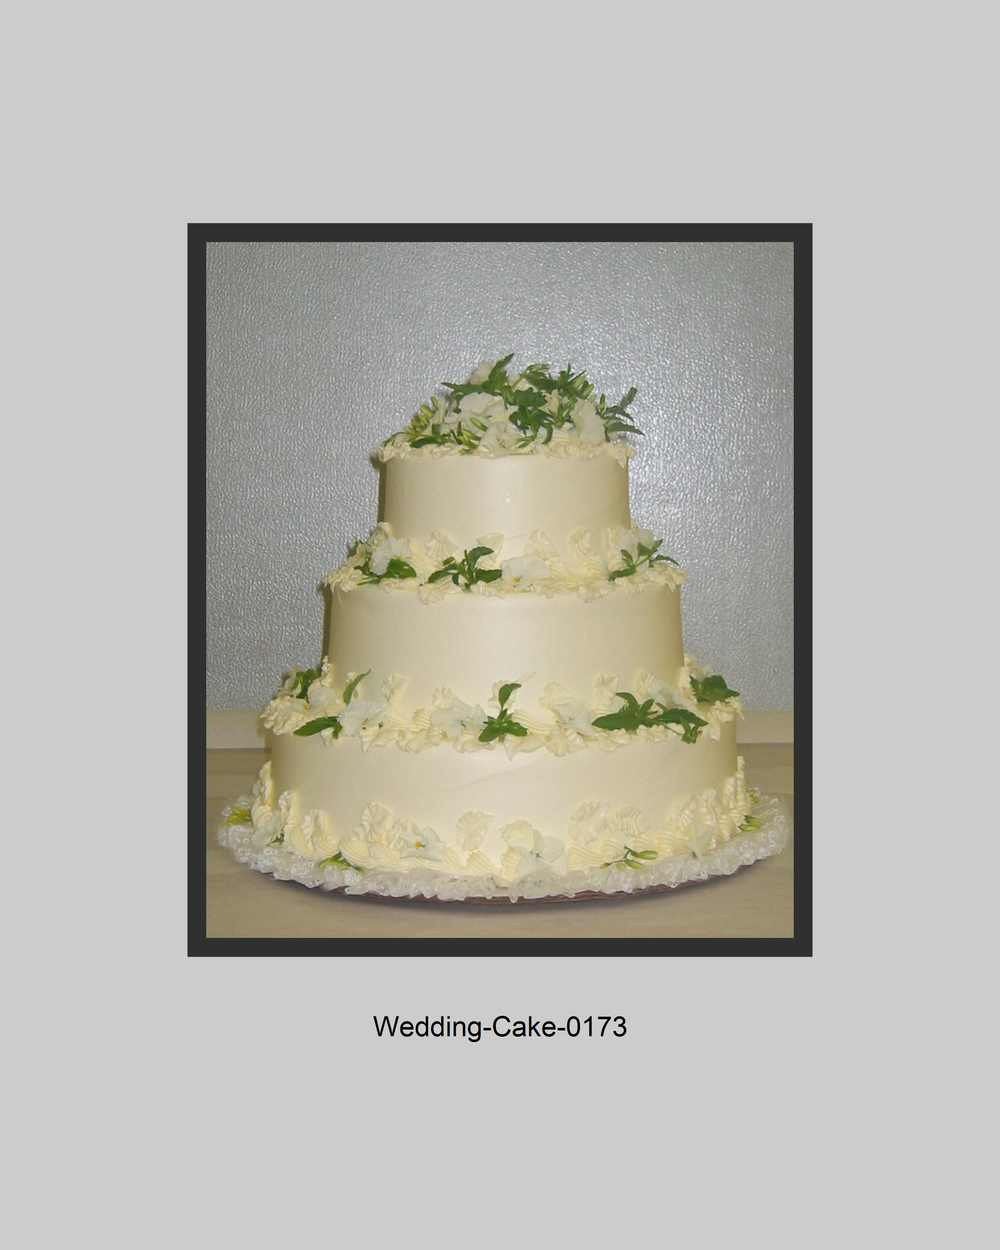 Wedding-Cake-Prints-0173.jpg